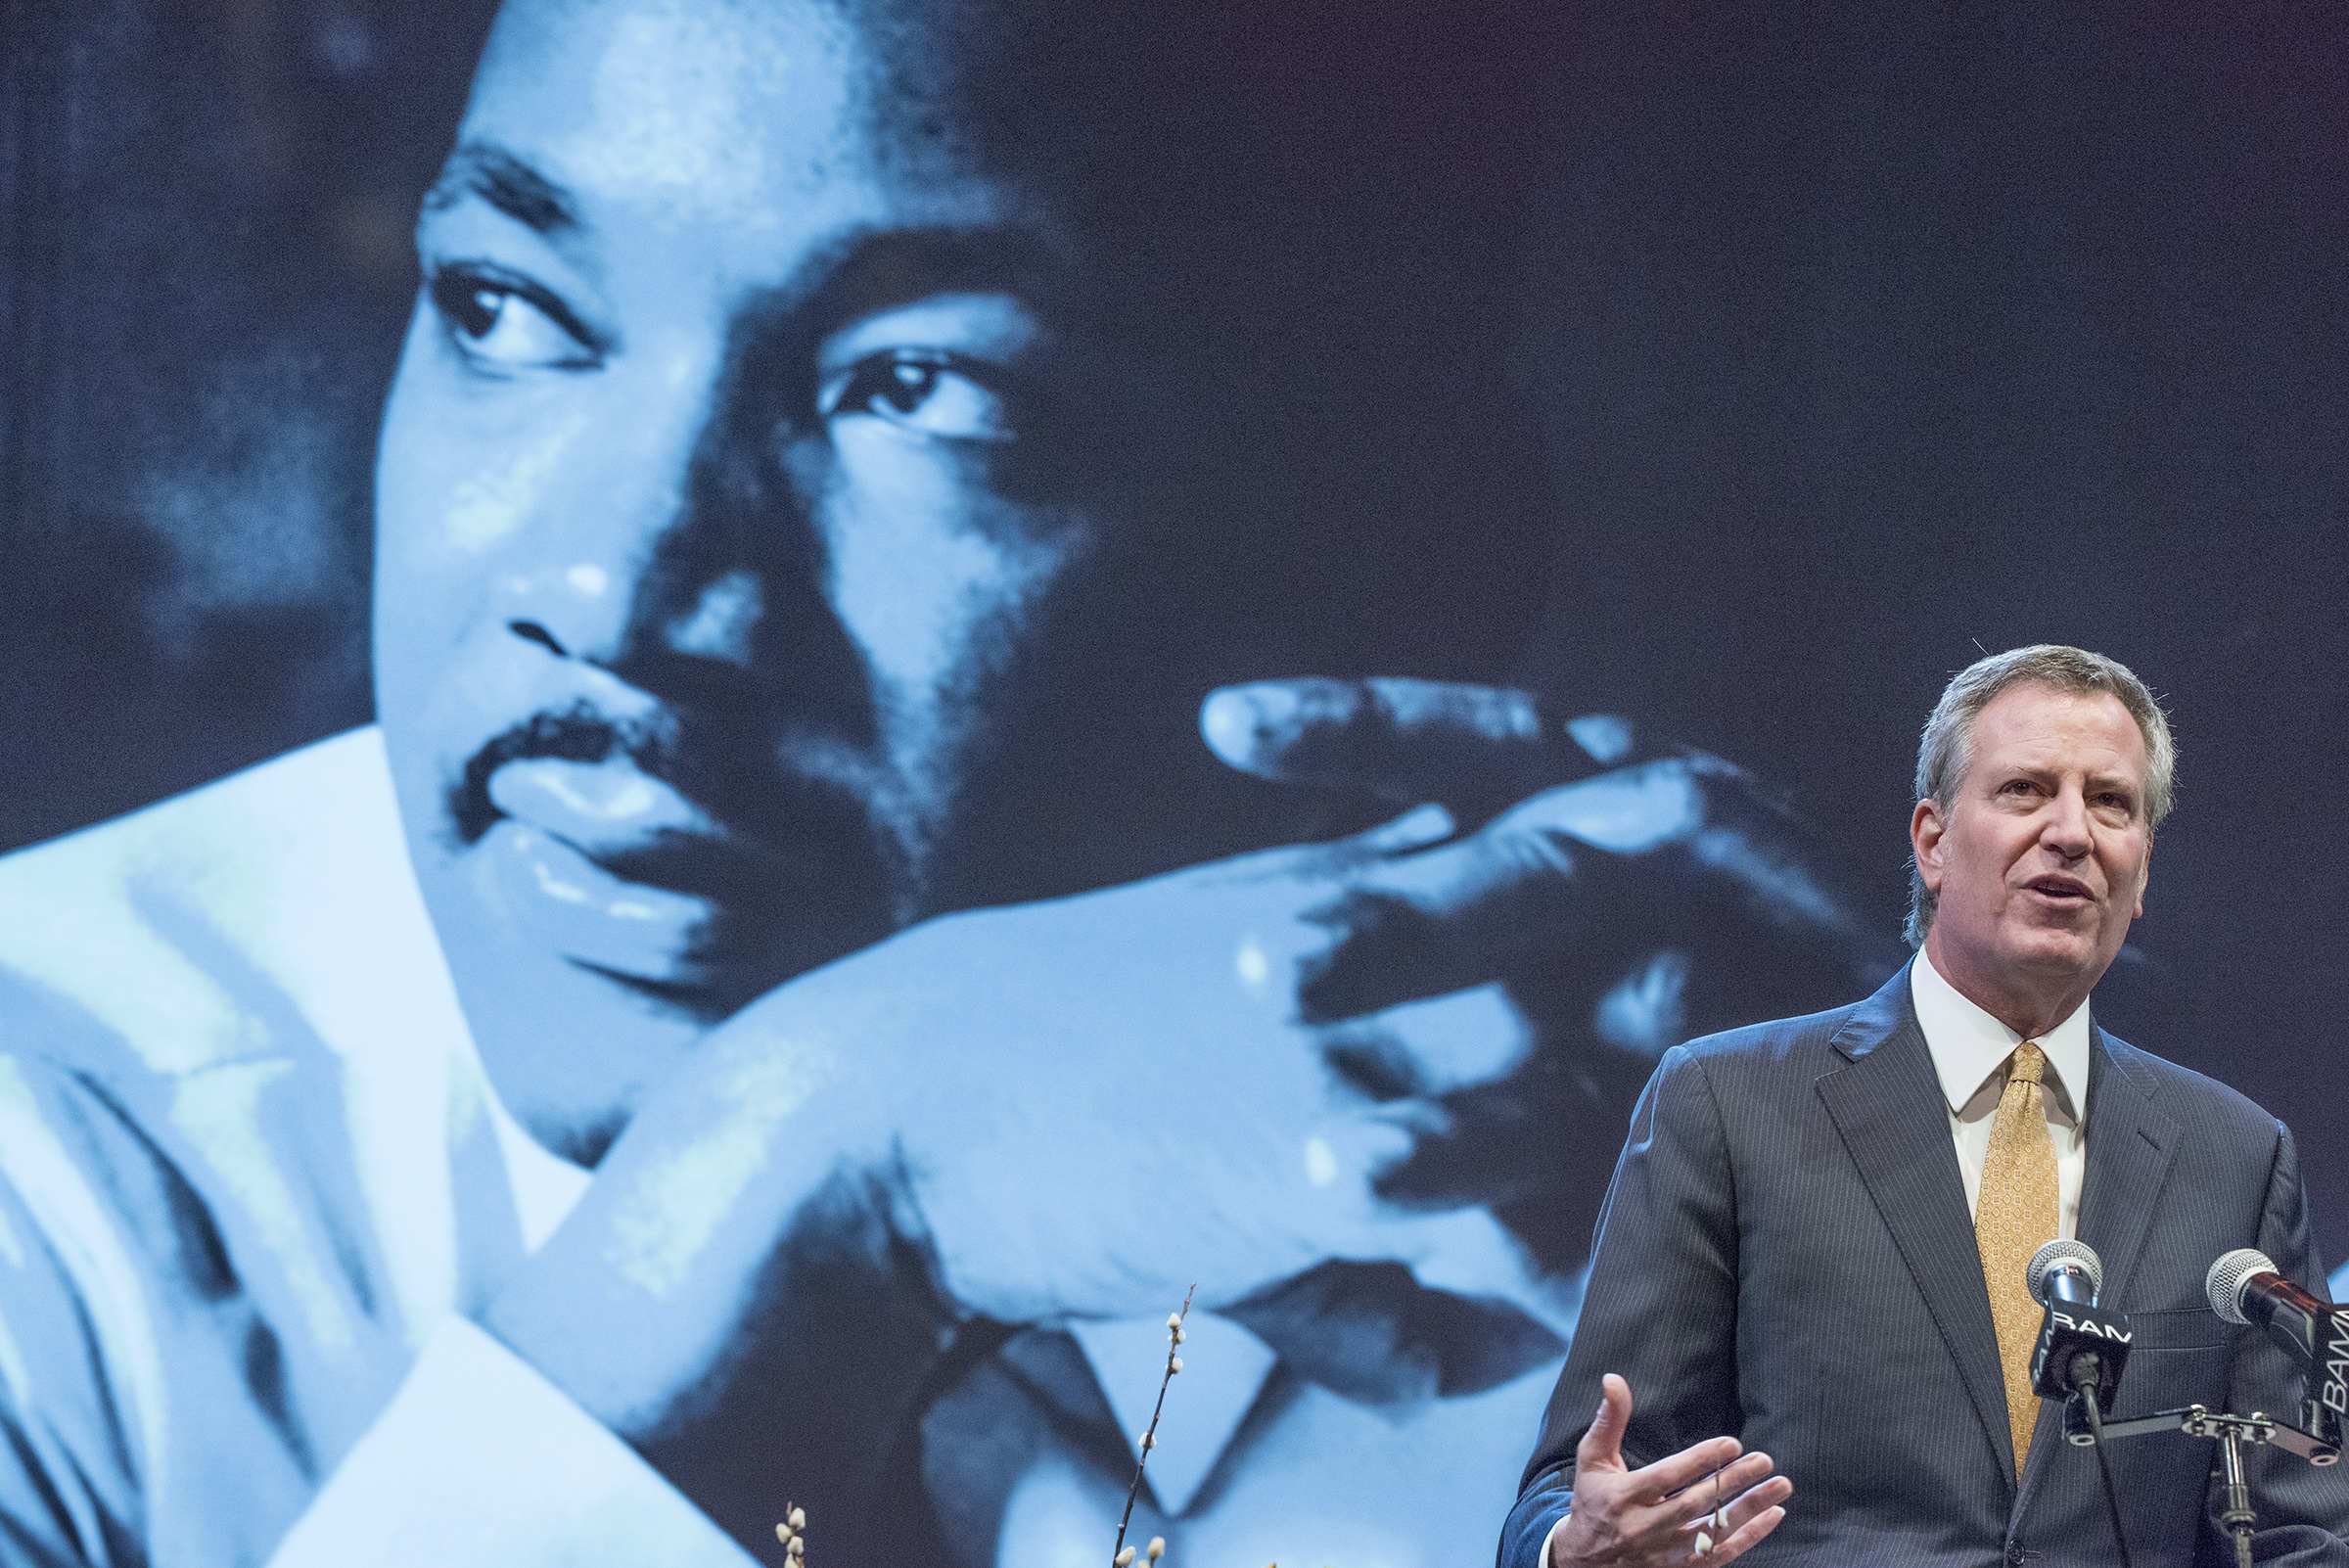 New York leaders honor Martin Luther King Jr.'s civil rights legacy